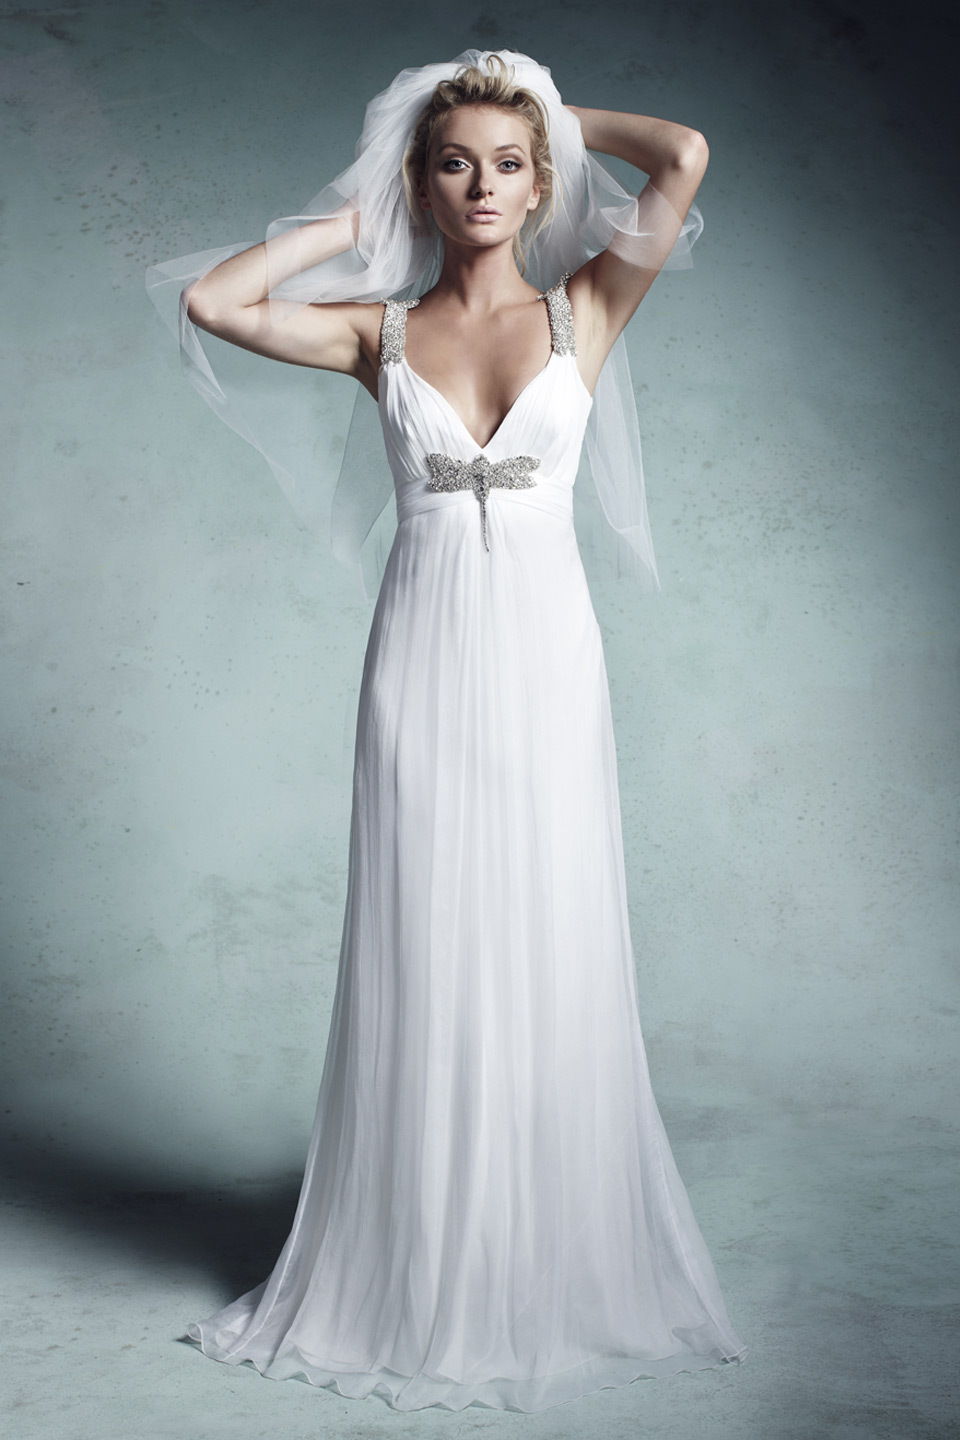 wedding dress by Collette Dinnigan 2013 bridal gowns 5